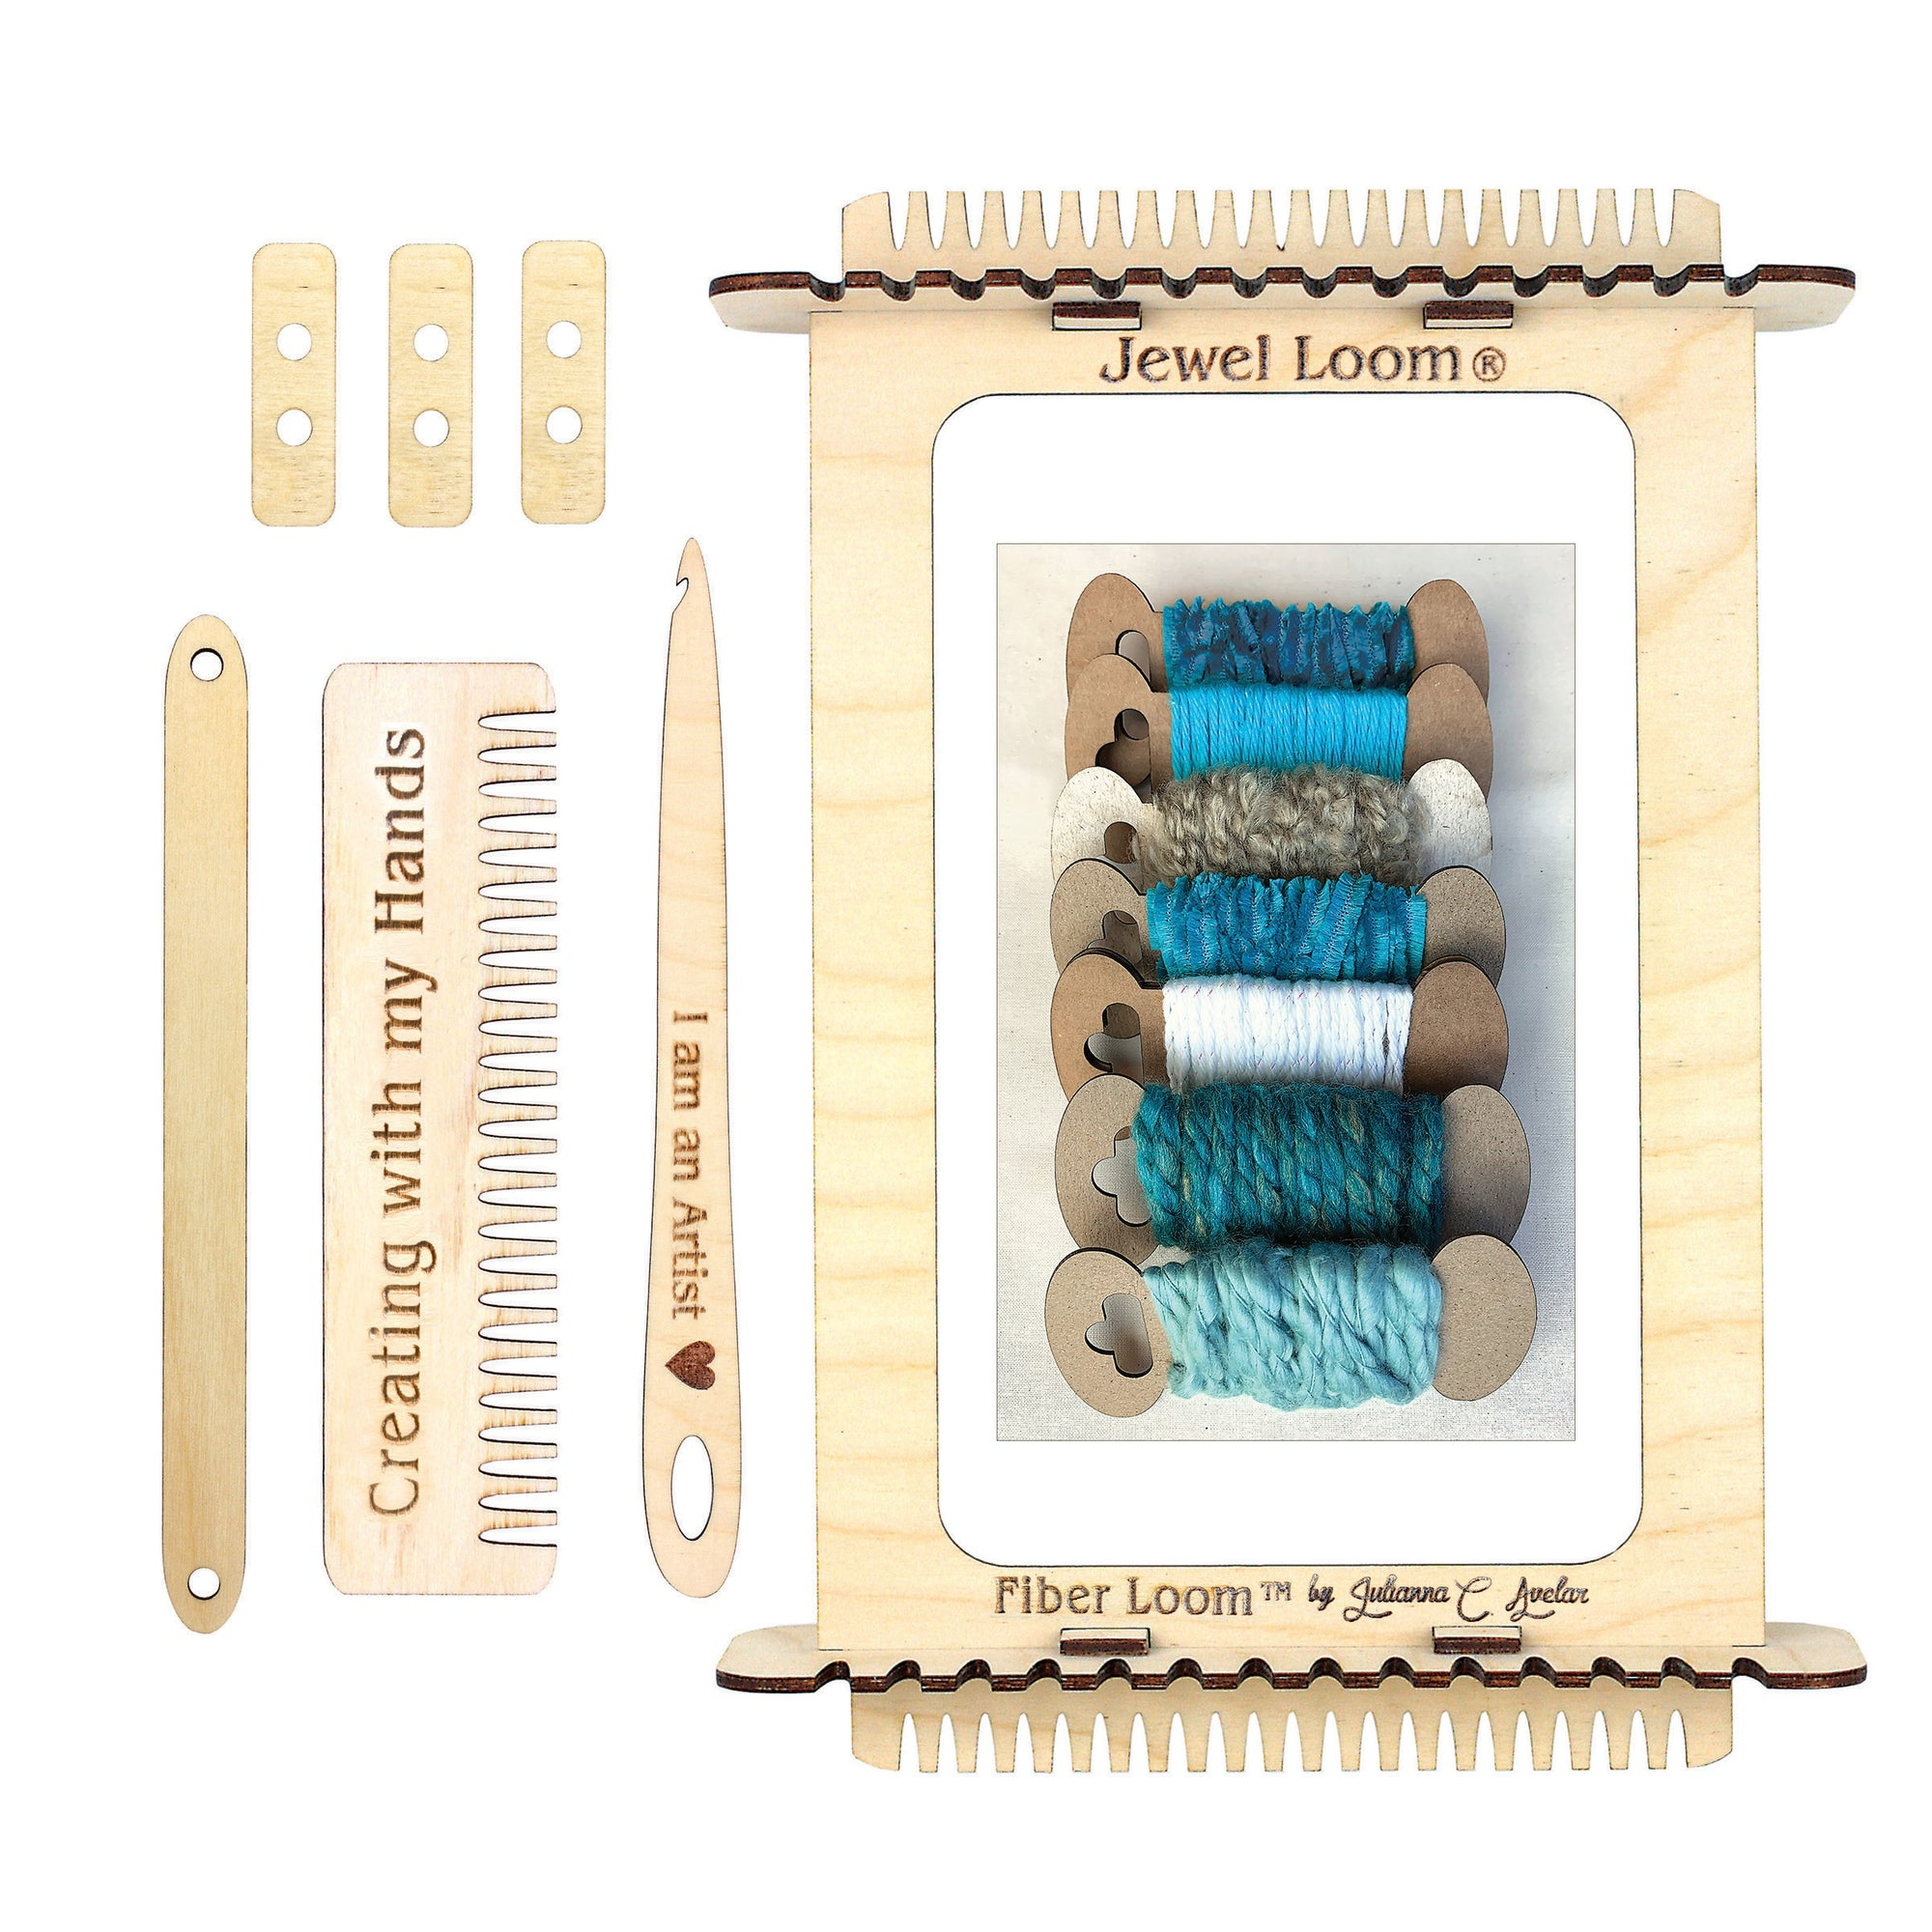 Weaving Loom Fiber Loom with Yarn Kit